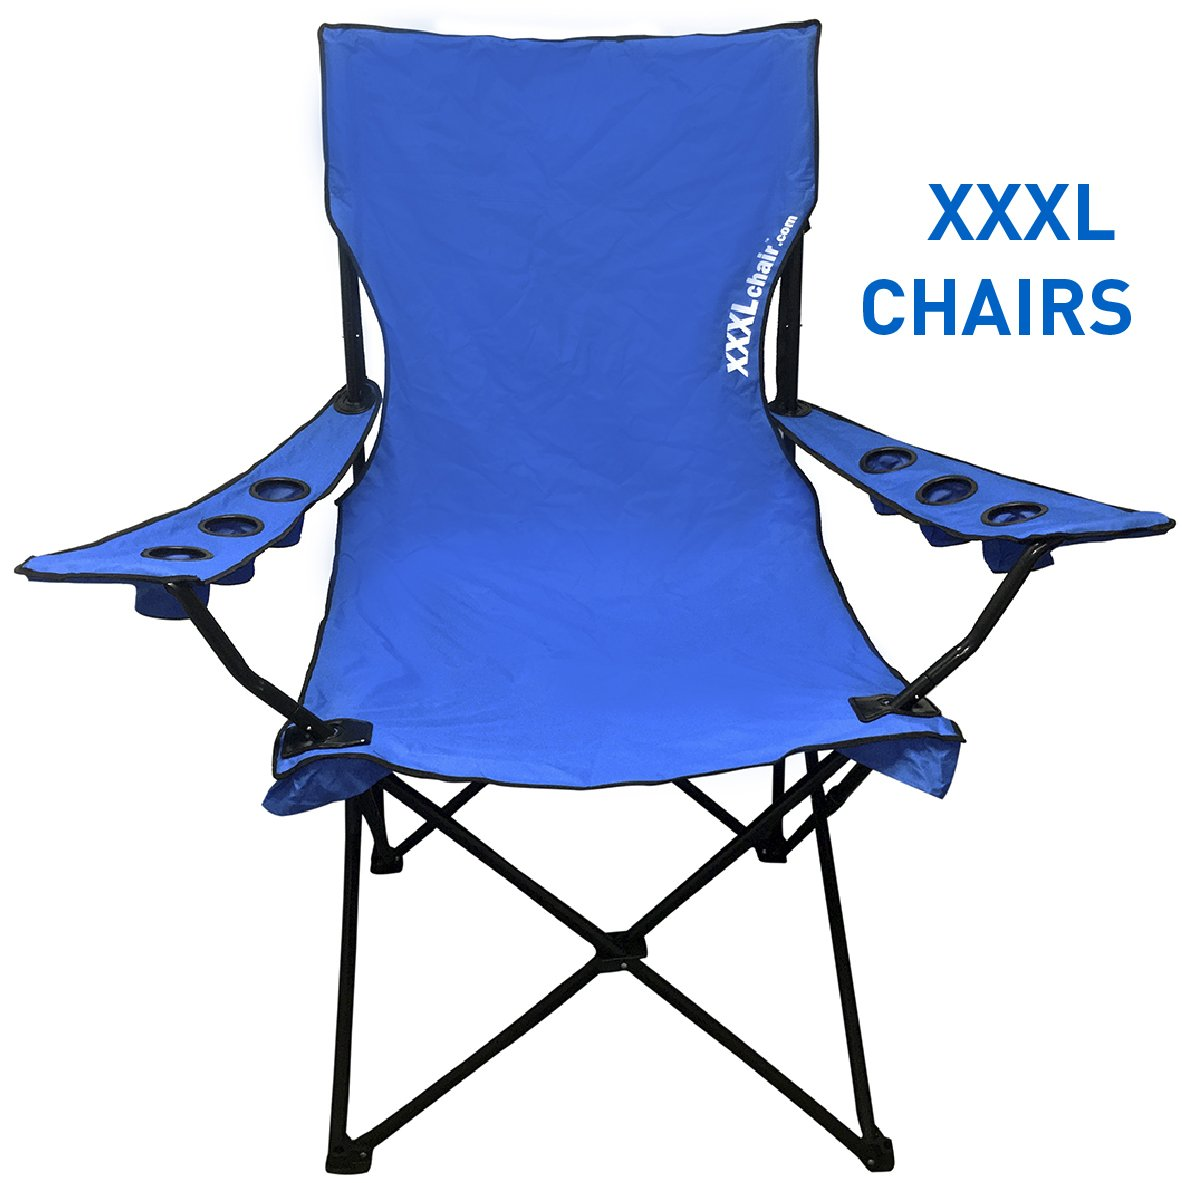 Giant Oversized Folding Camping Chair